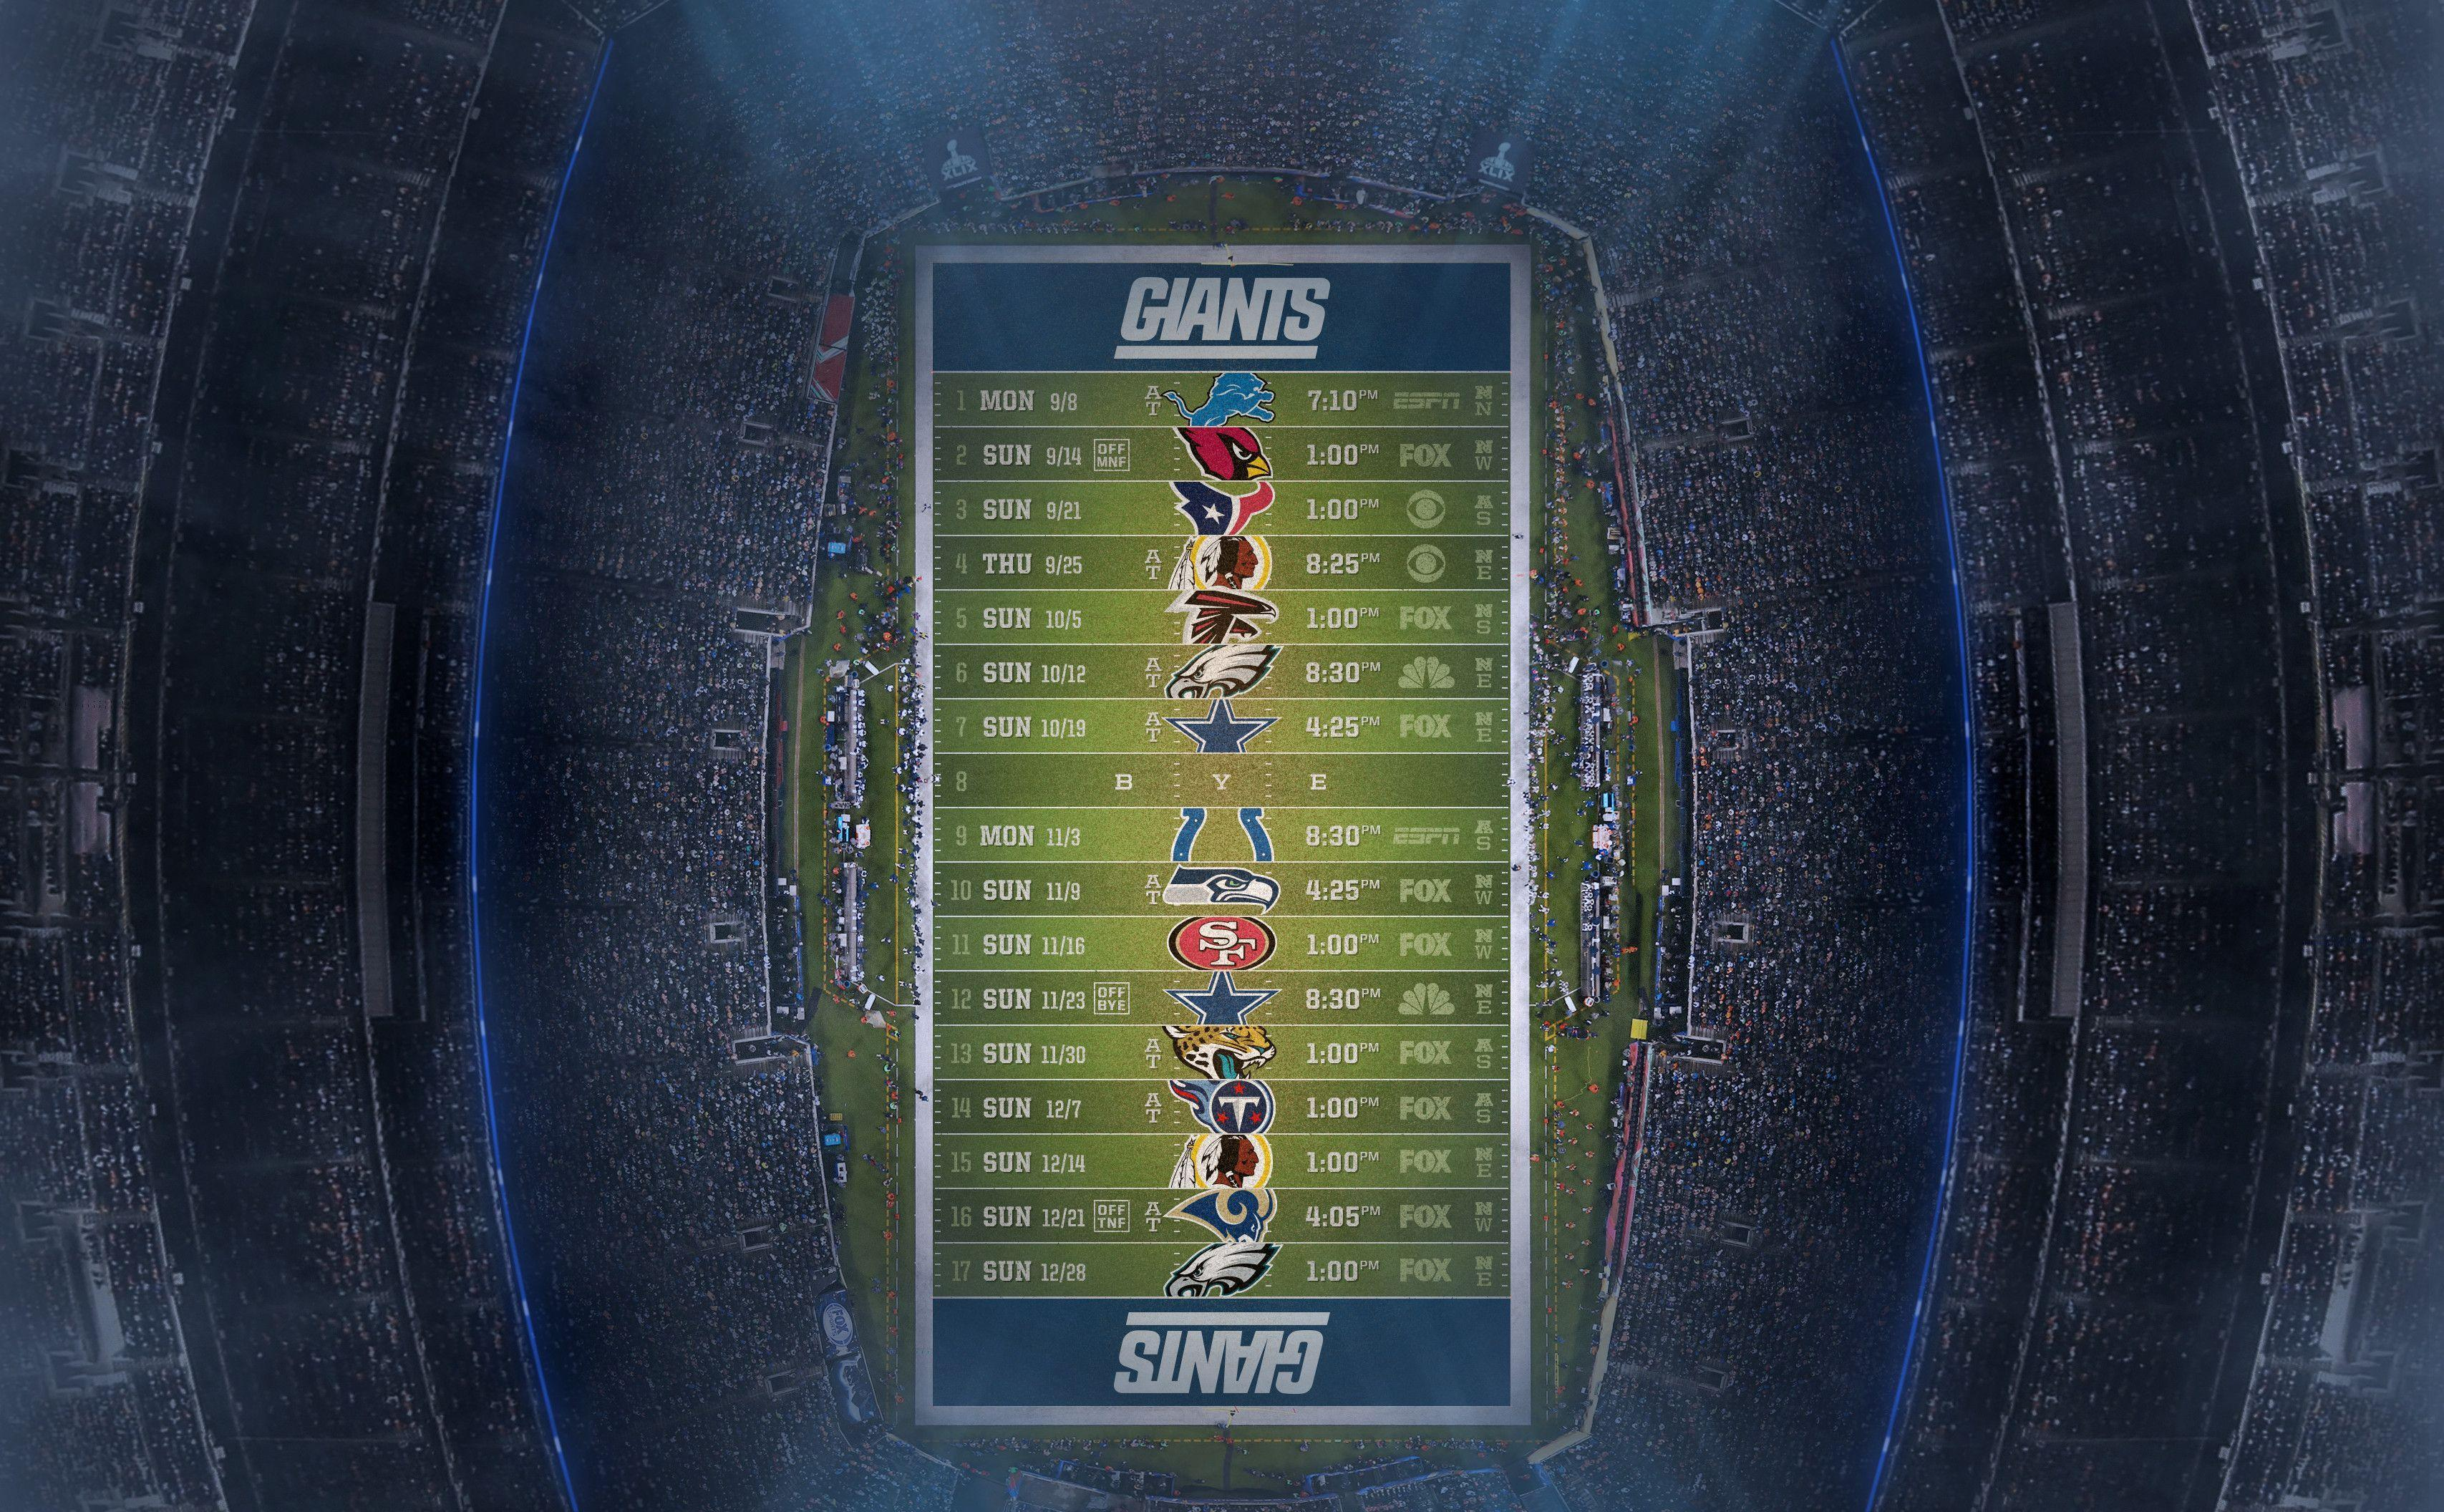 Ladies and gents, the 2014 team season schedules designed for